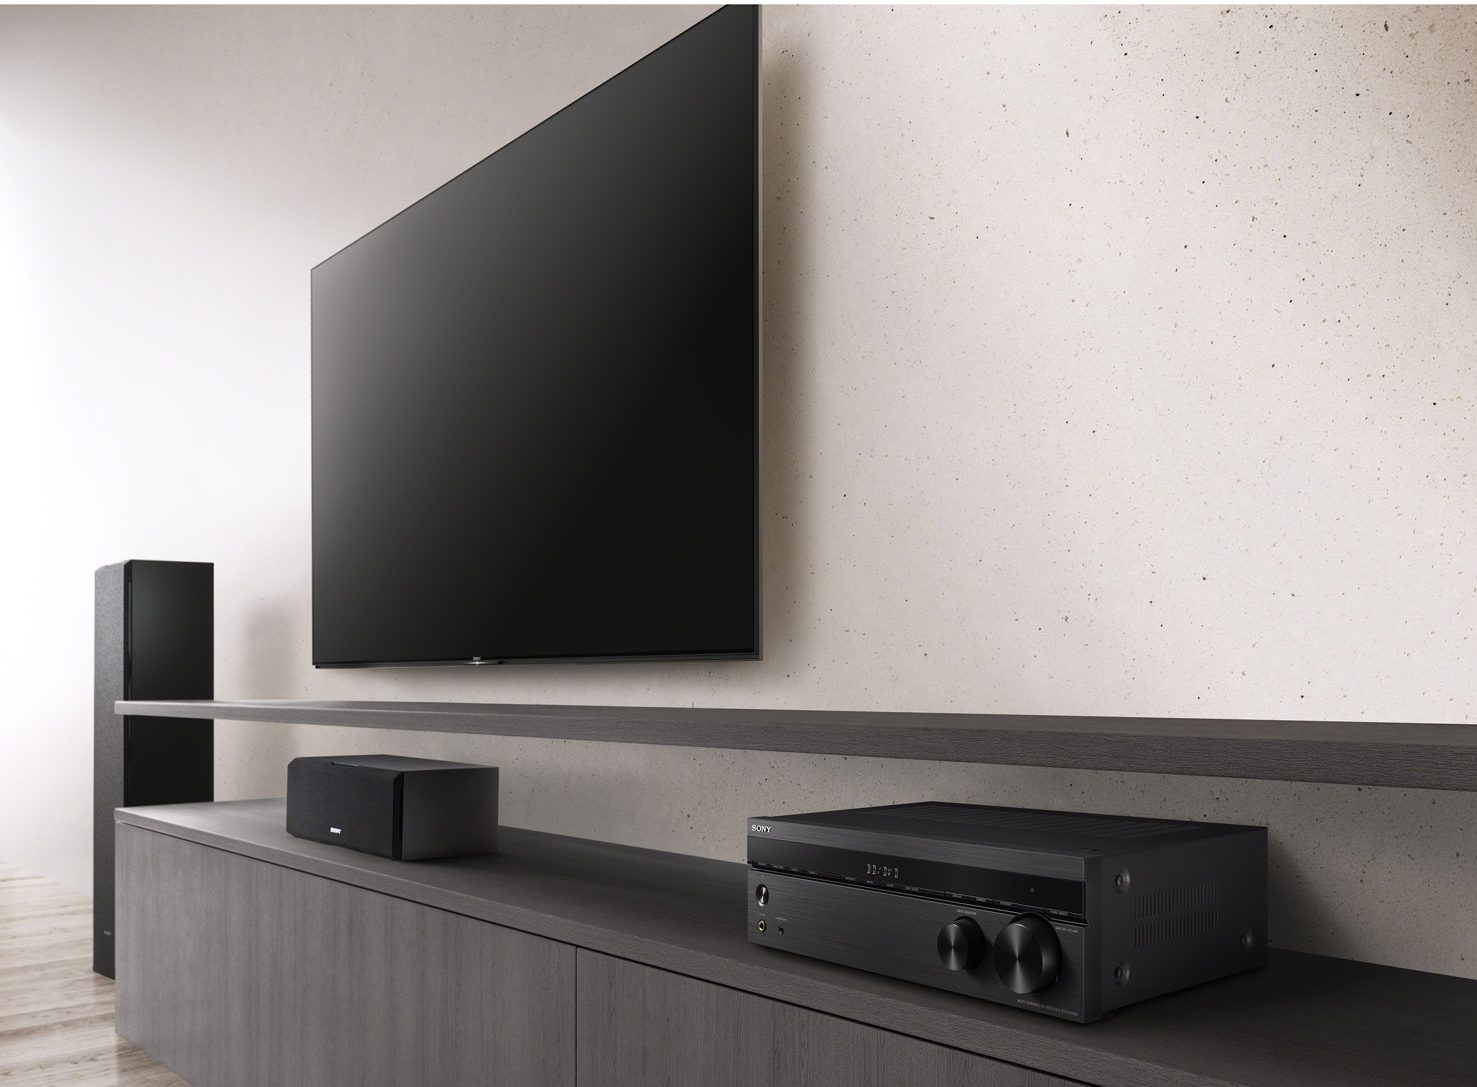 A Beginner's Guide to Home Theatre Audio | Best Buy Blog on home theatre recliners, home theatre tv stands, home theatre installers, home theatre kitchen, home theatre design, home theatre sofa, home theatre china, home theatre cables, home theatre installation, radio furniture, home theatre car, home theatre speaker stands, home theatre supplies, home theatre room, bedroom furniture, home theatre ceilings, home theatre seating, home theatre shelf, home theatre marketing, home theatre technology,